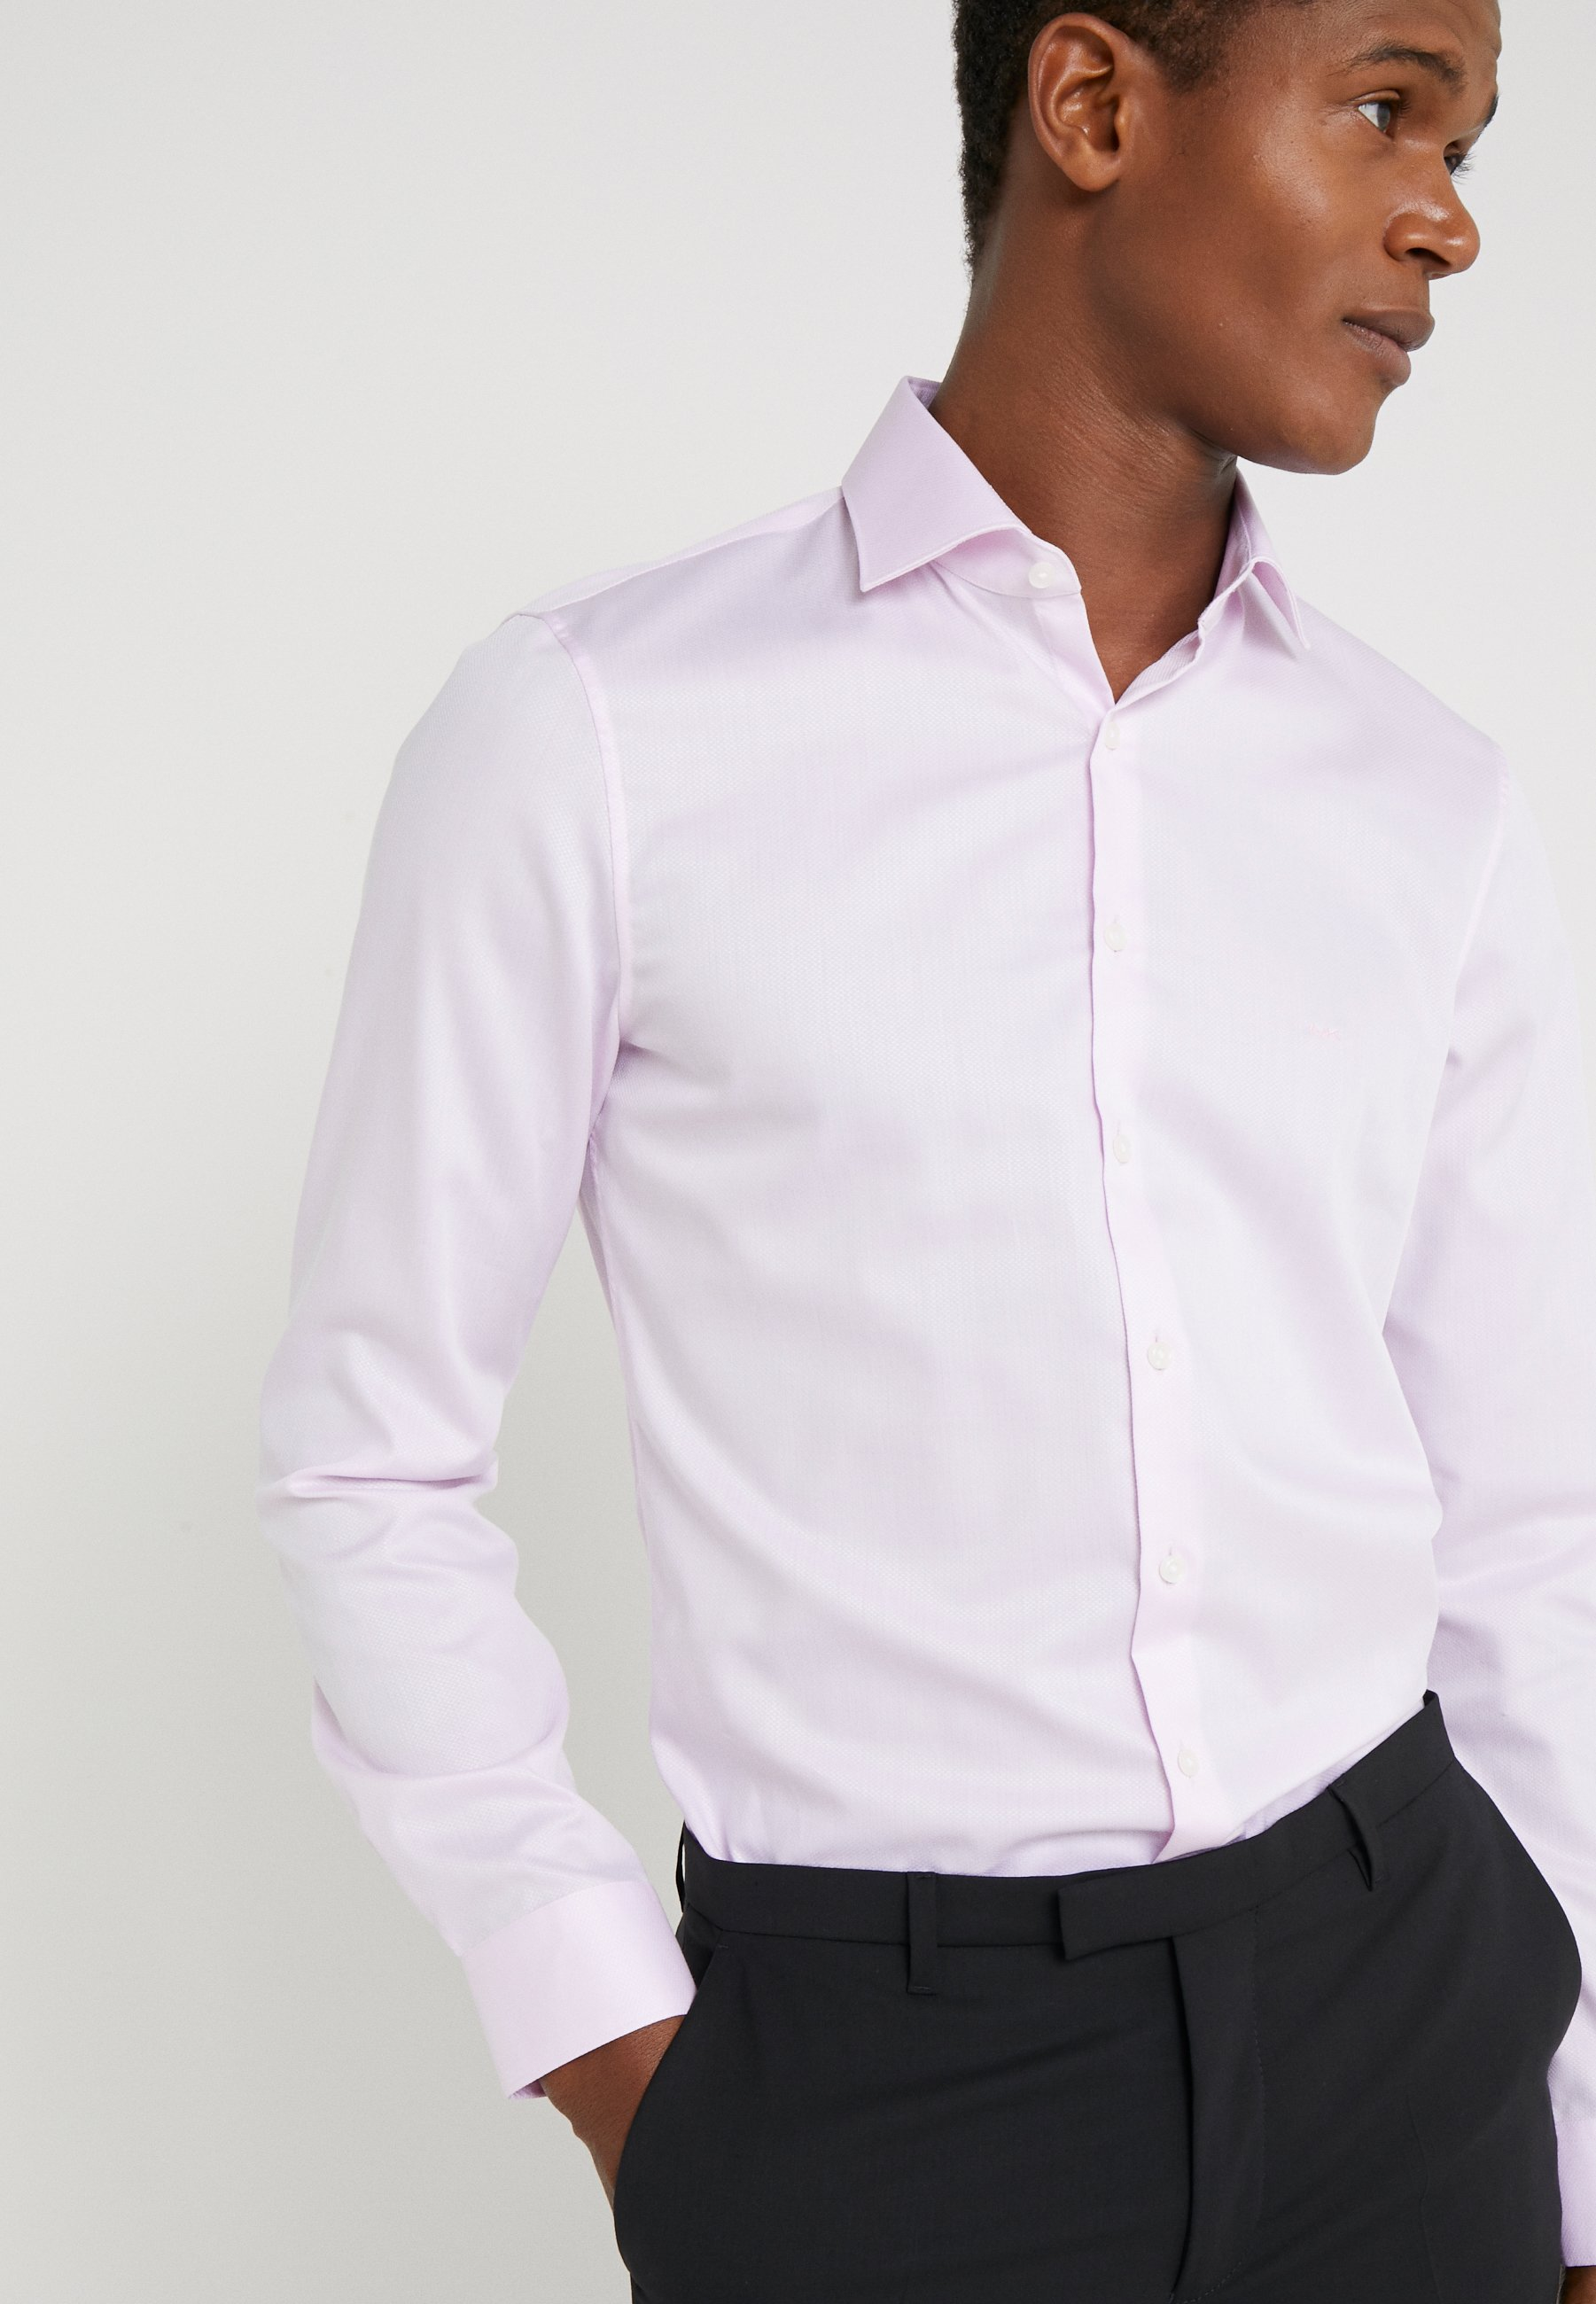 Michael Kors Parma Slim Fit Solid - Business Skjorter Pink